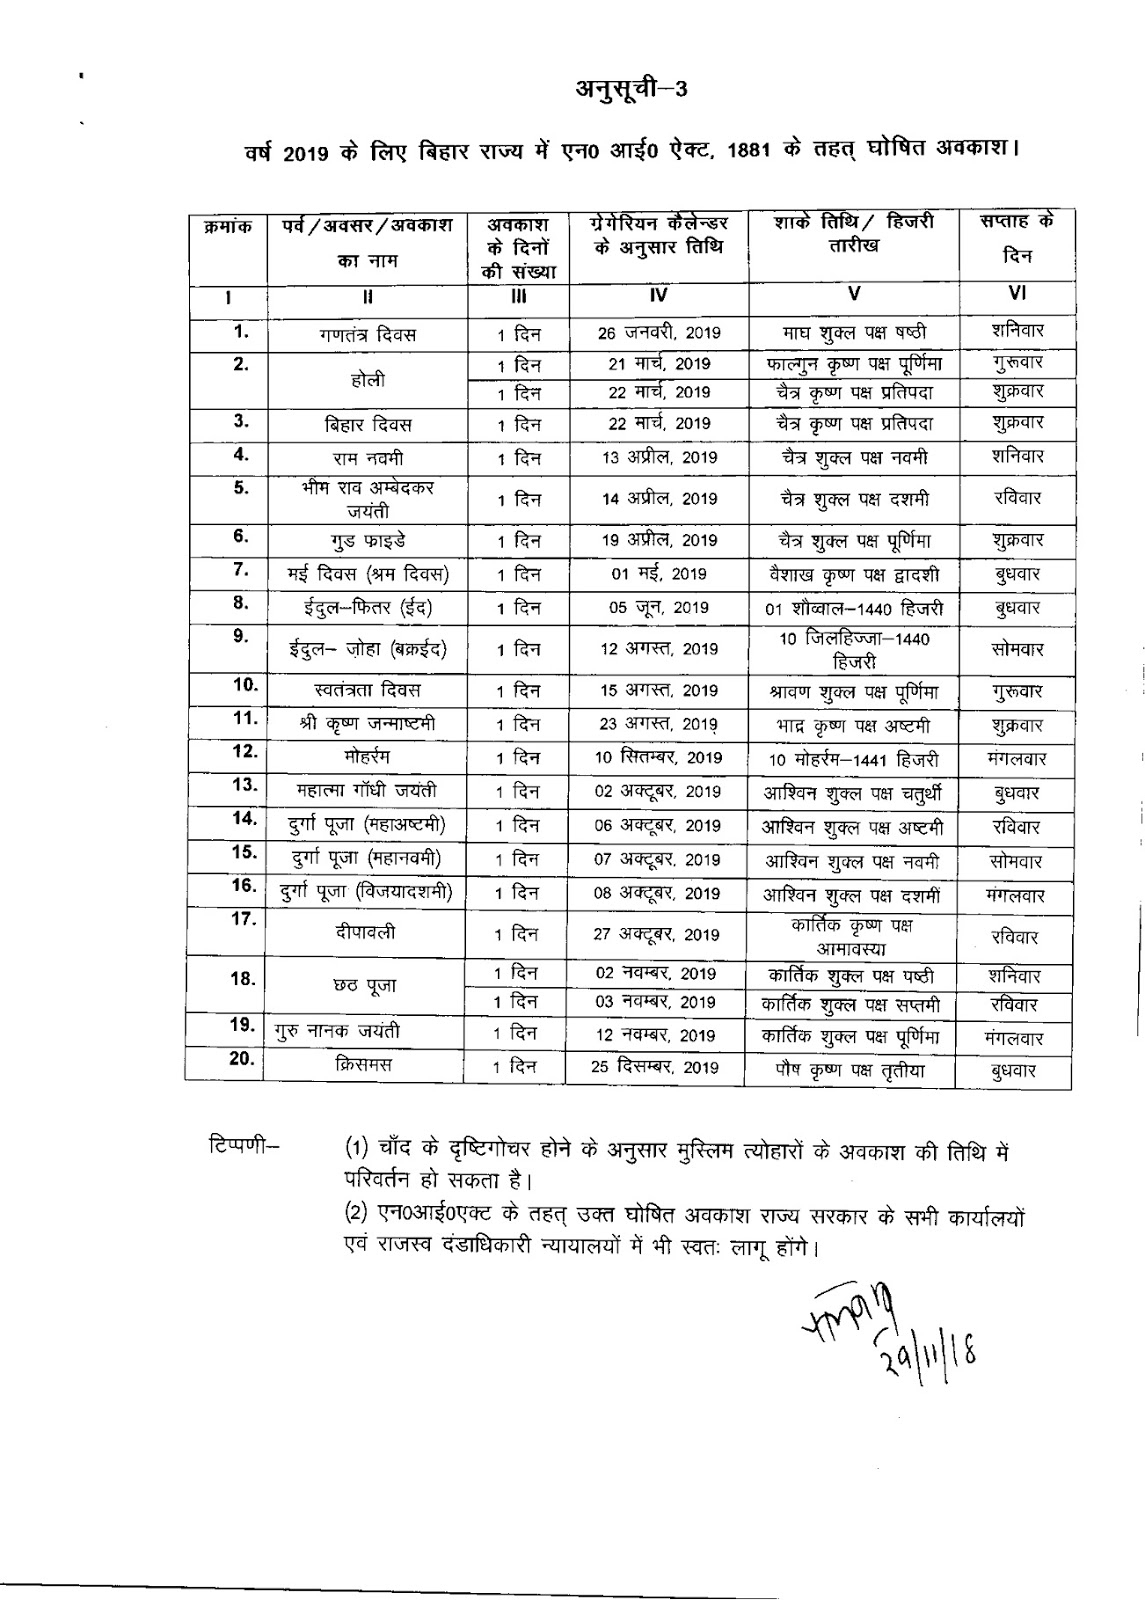 Bihar Government Calendar 2019 with regard to Bihar Govt Calendar